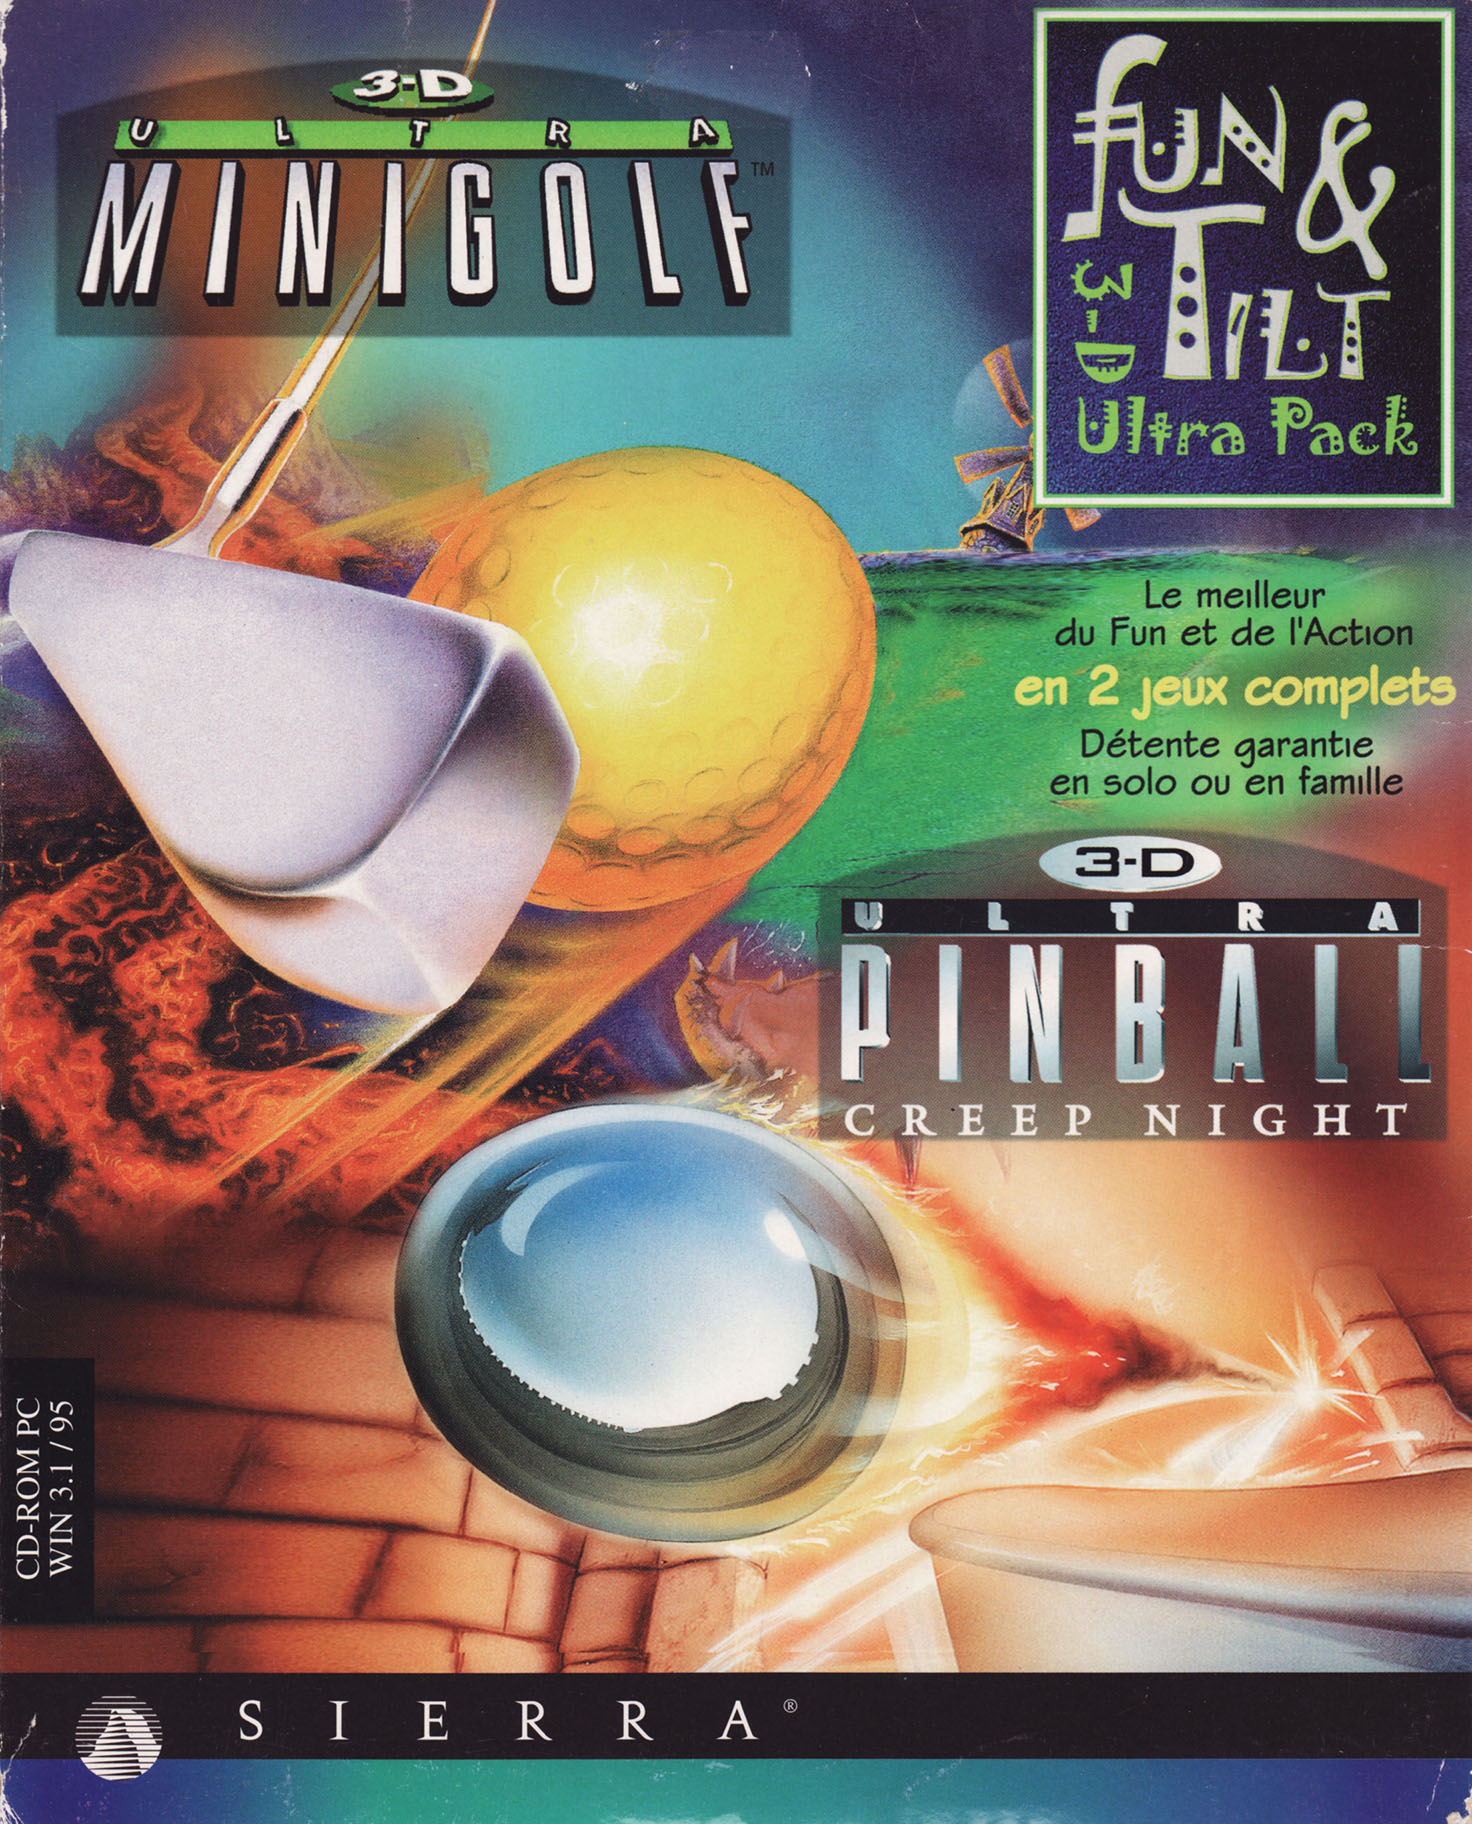 image : /images_abandonware/compilations/89front.jpg